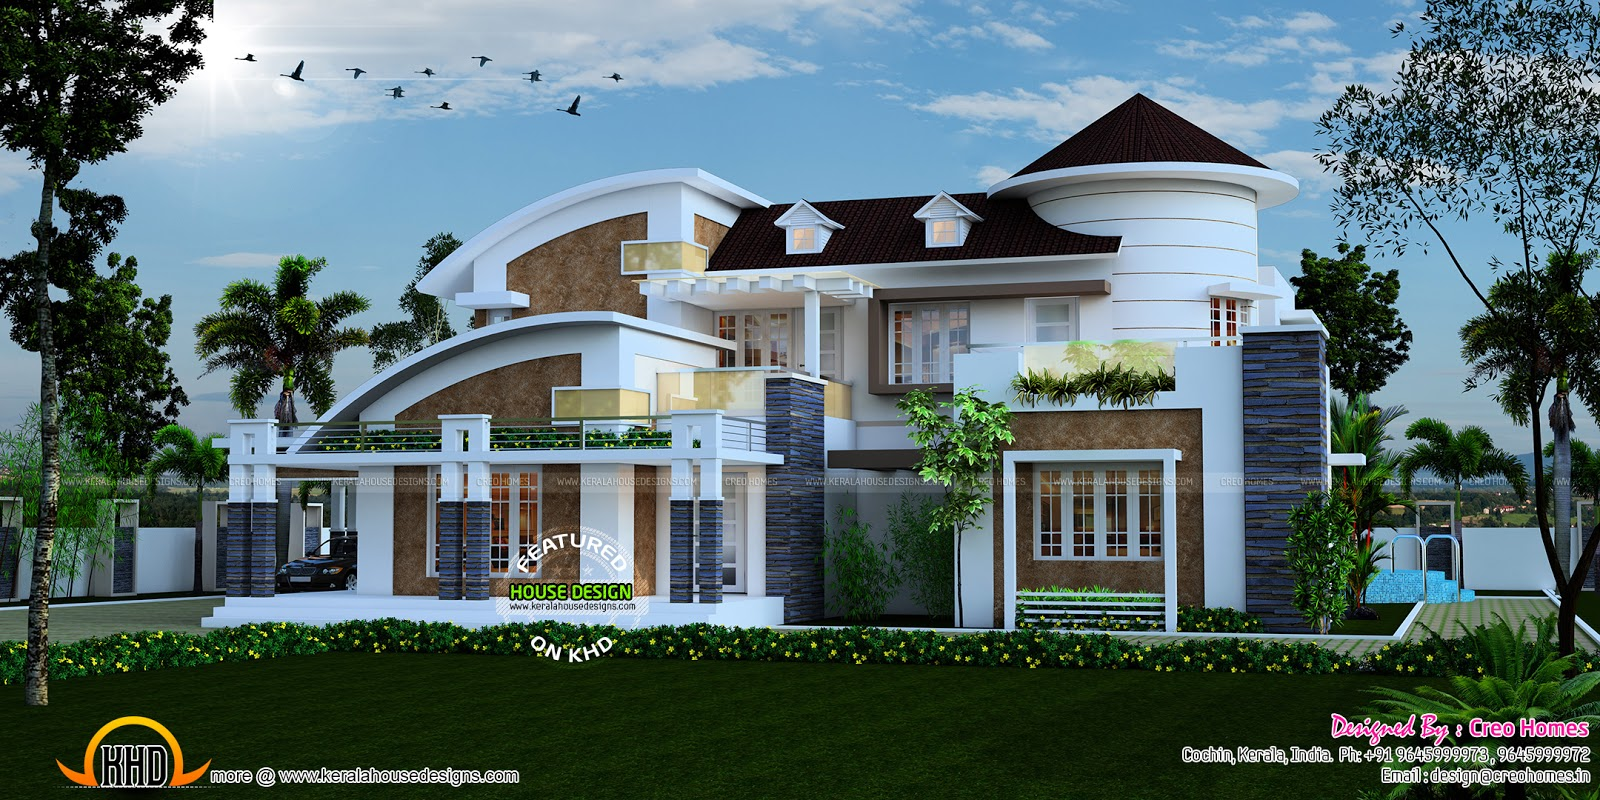 3 BHK Slanting Roof Home Keralahousedesigns